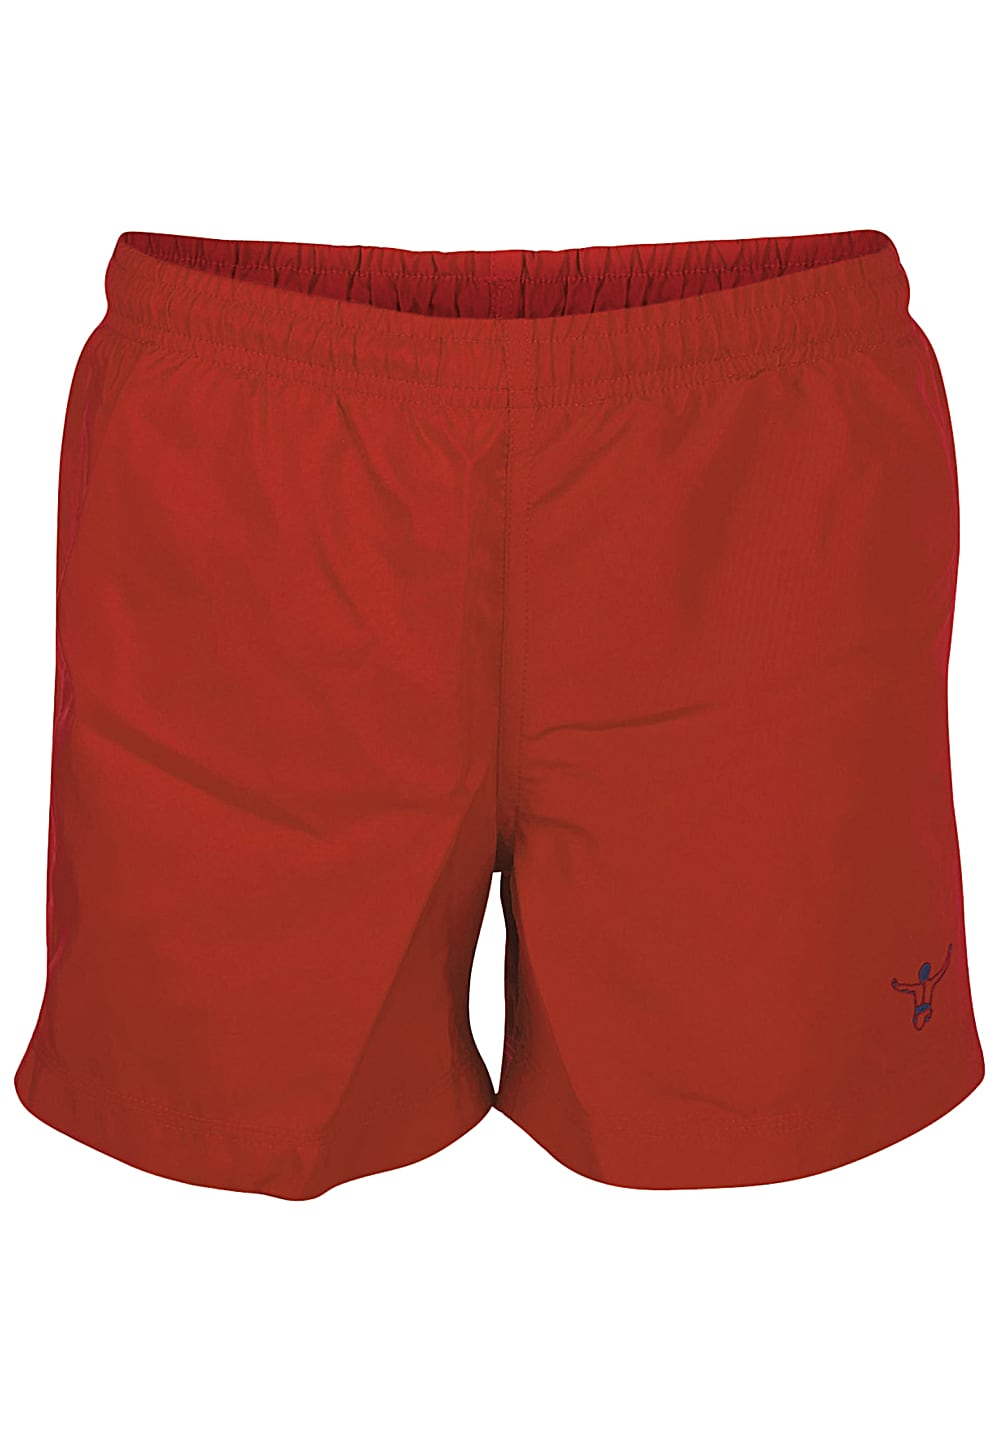 Chiemsee Gregory Boardshorts für Jungs Rot